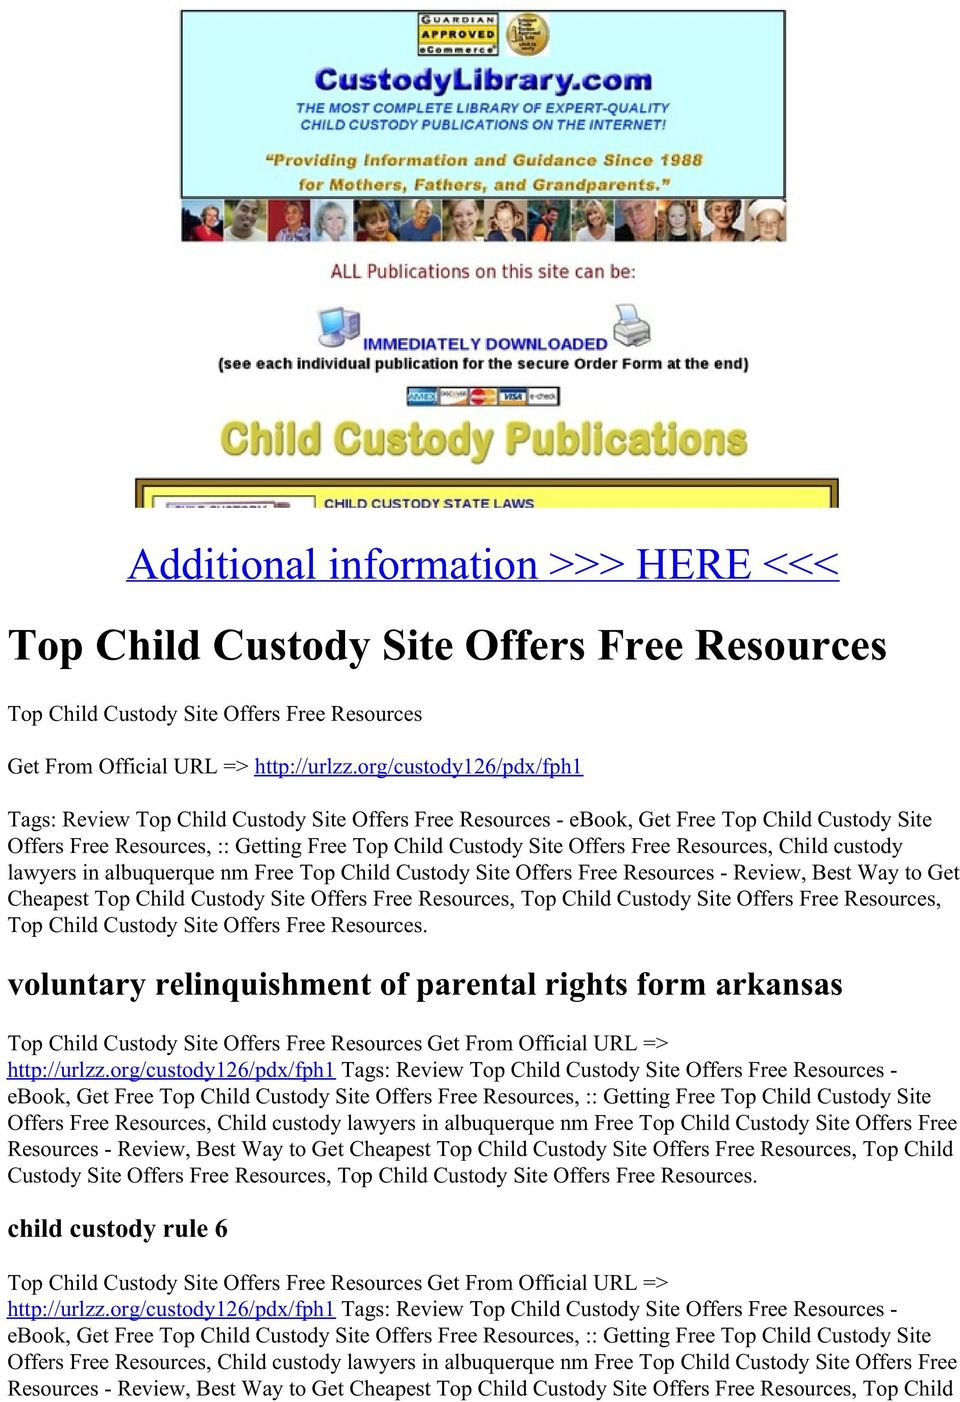 Resources, Child custody lawyers in albuquerque nm Free Top Child Custody Site Offers Free Resources - Review, Best Way to Get Cheapest Top Child Custody Site Offers Free Resources, Top Child Custody